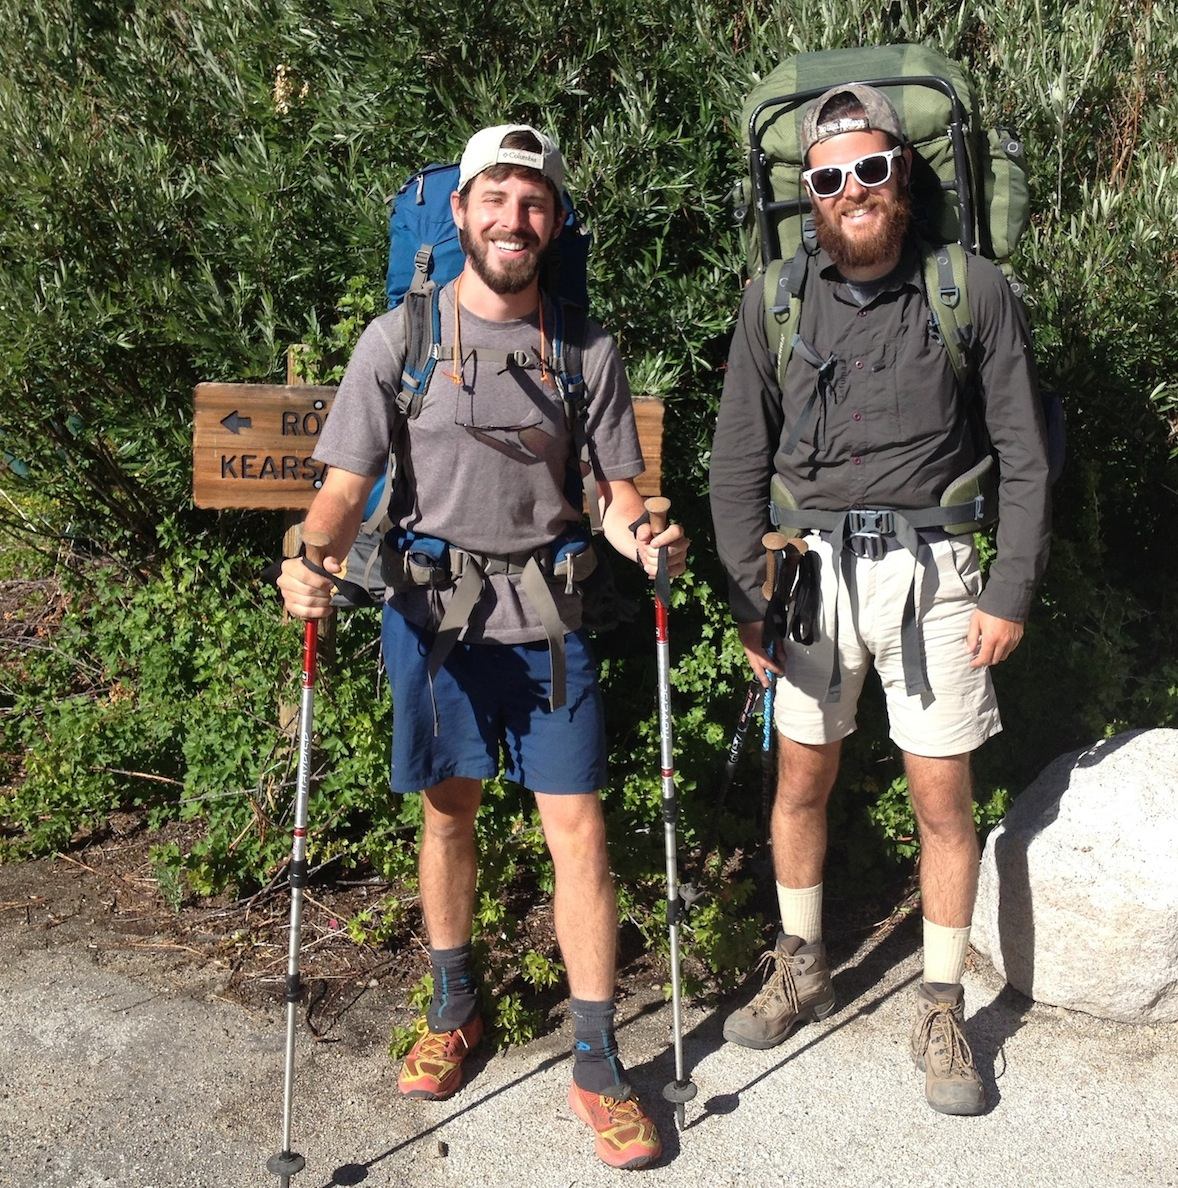 JMT hikers Jeremy and Quinn have good reason to be happy -- they got ahead of schedule and came out for a break at the Base Camp and missed some serious July weather in the high Sierra.